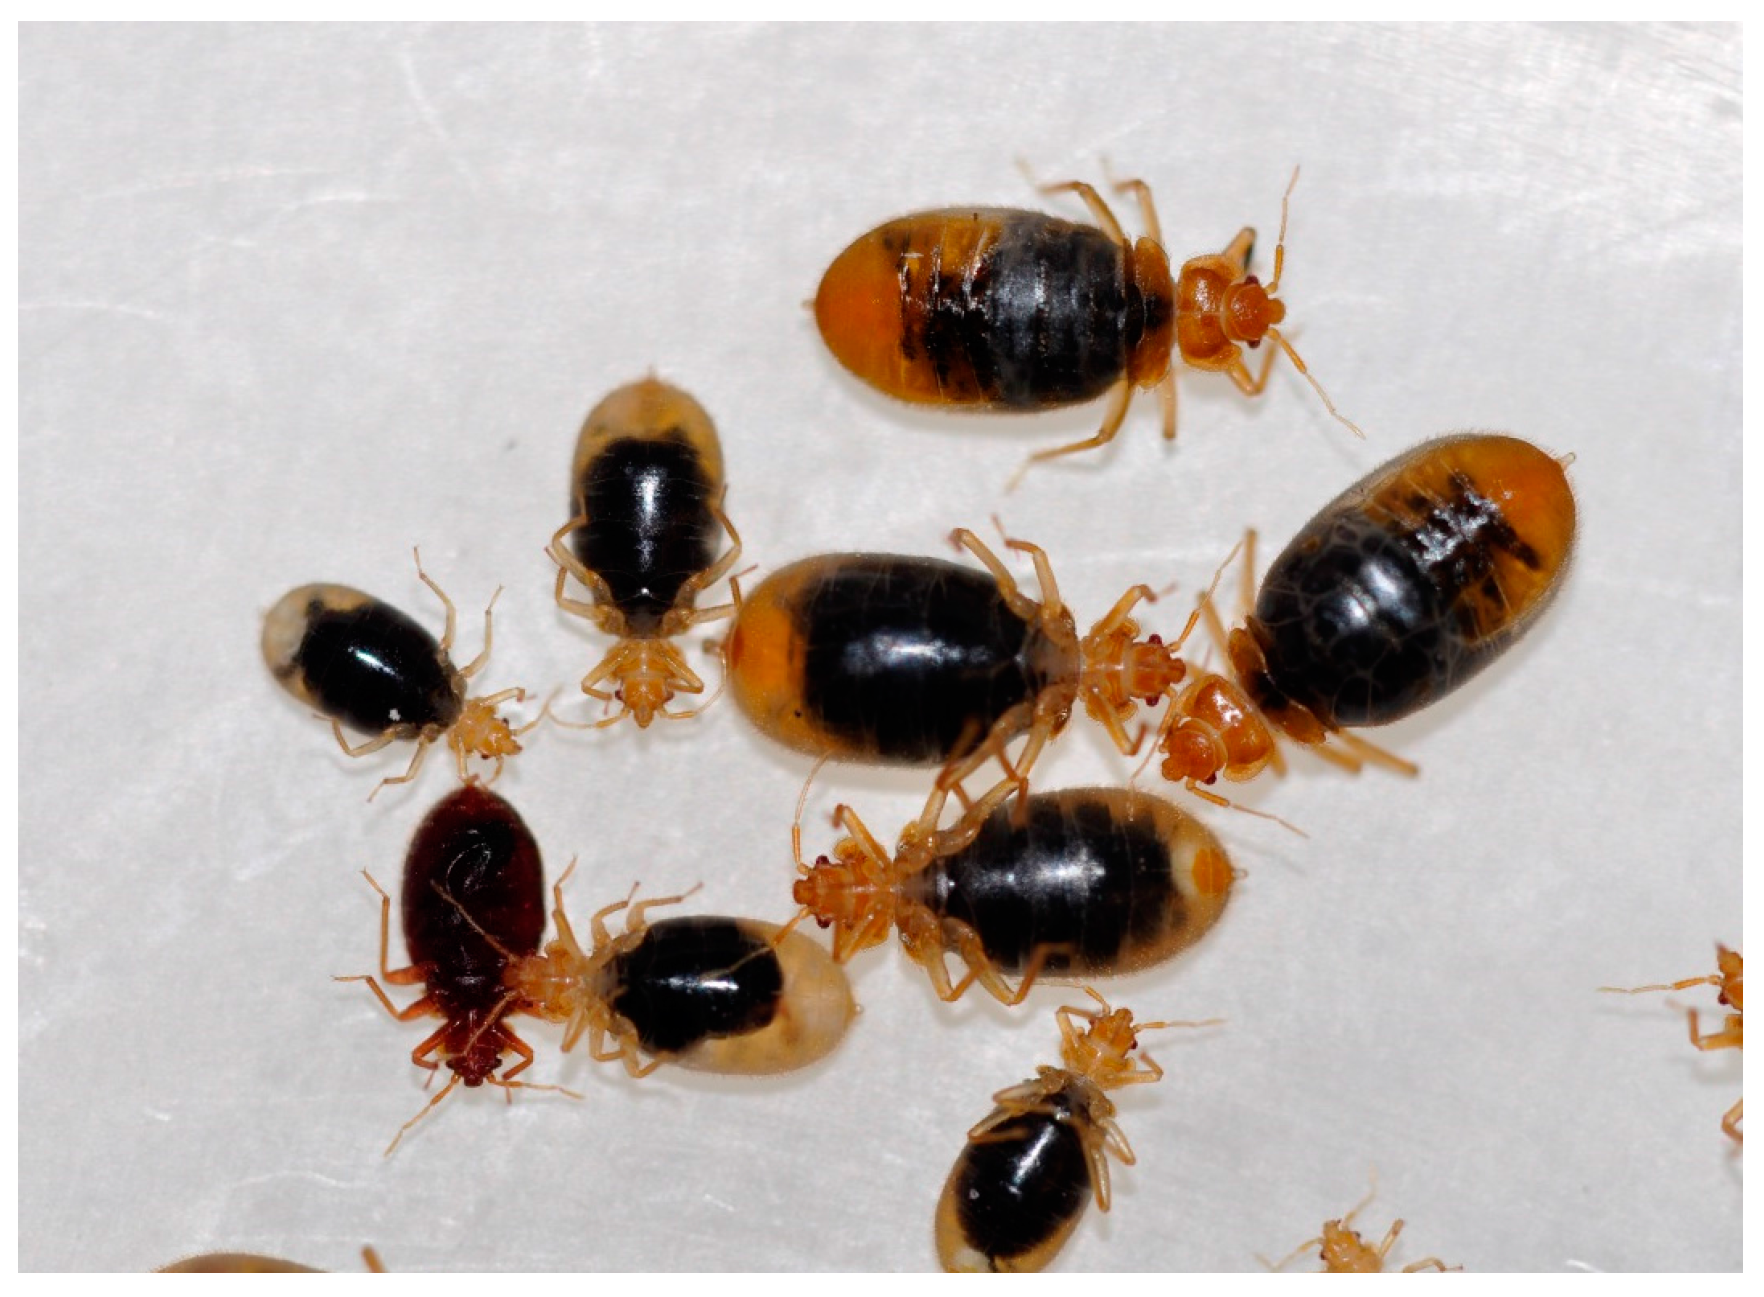 Insects | Free Full-Text | Effect of Moxidectin on Bed Bug Feeding, Development, Fecundity, and Survivorship | HTML